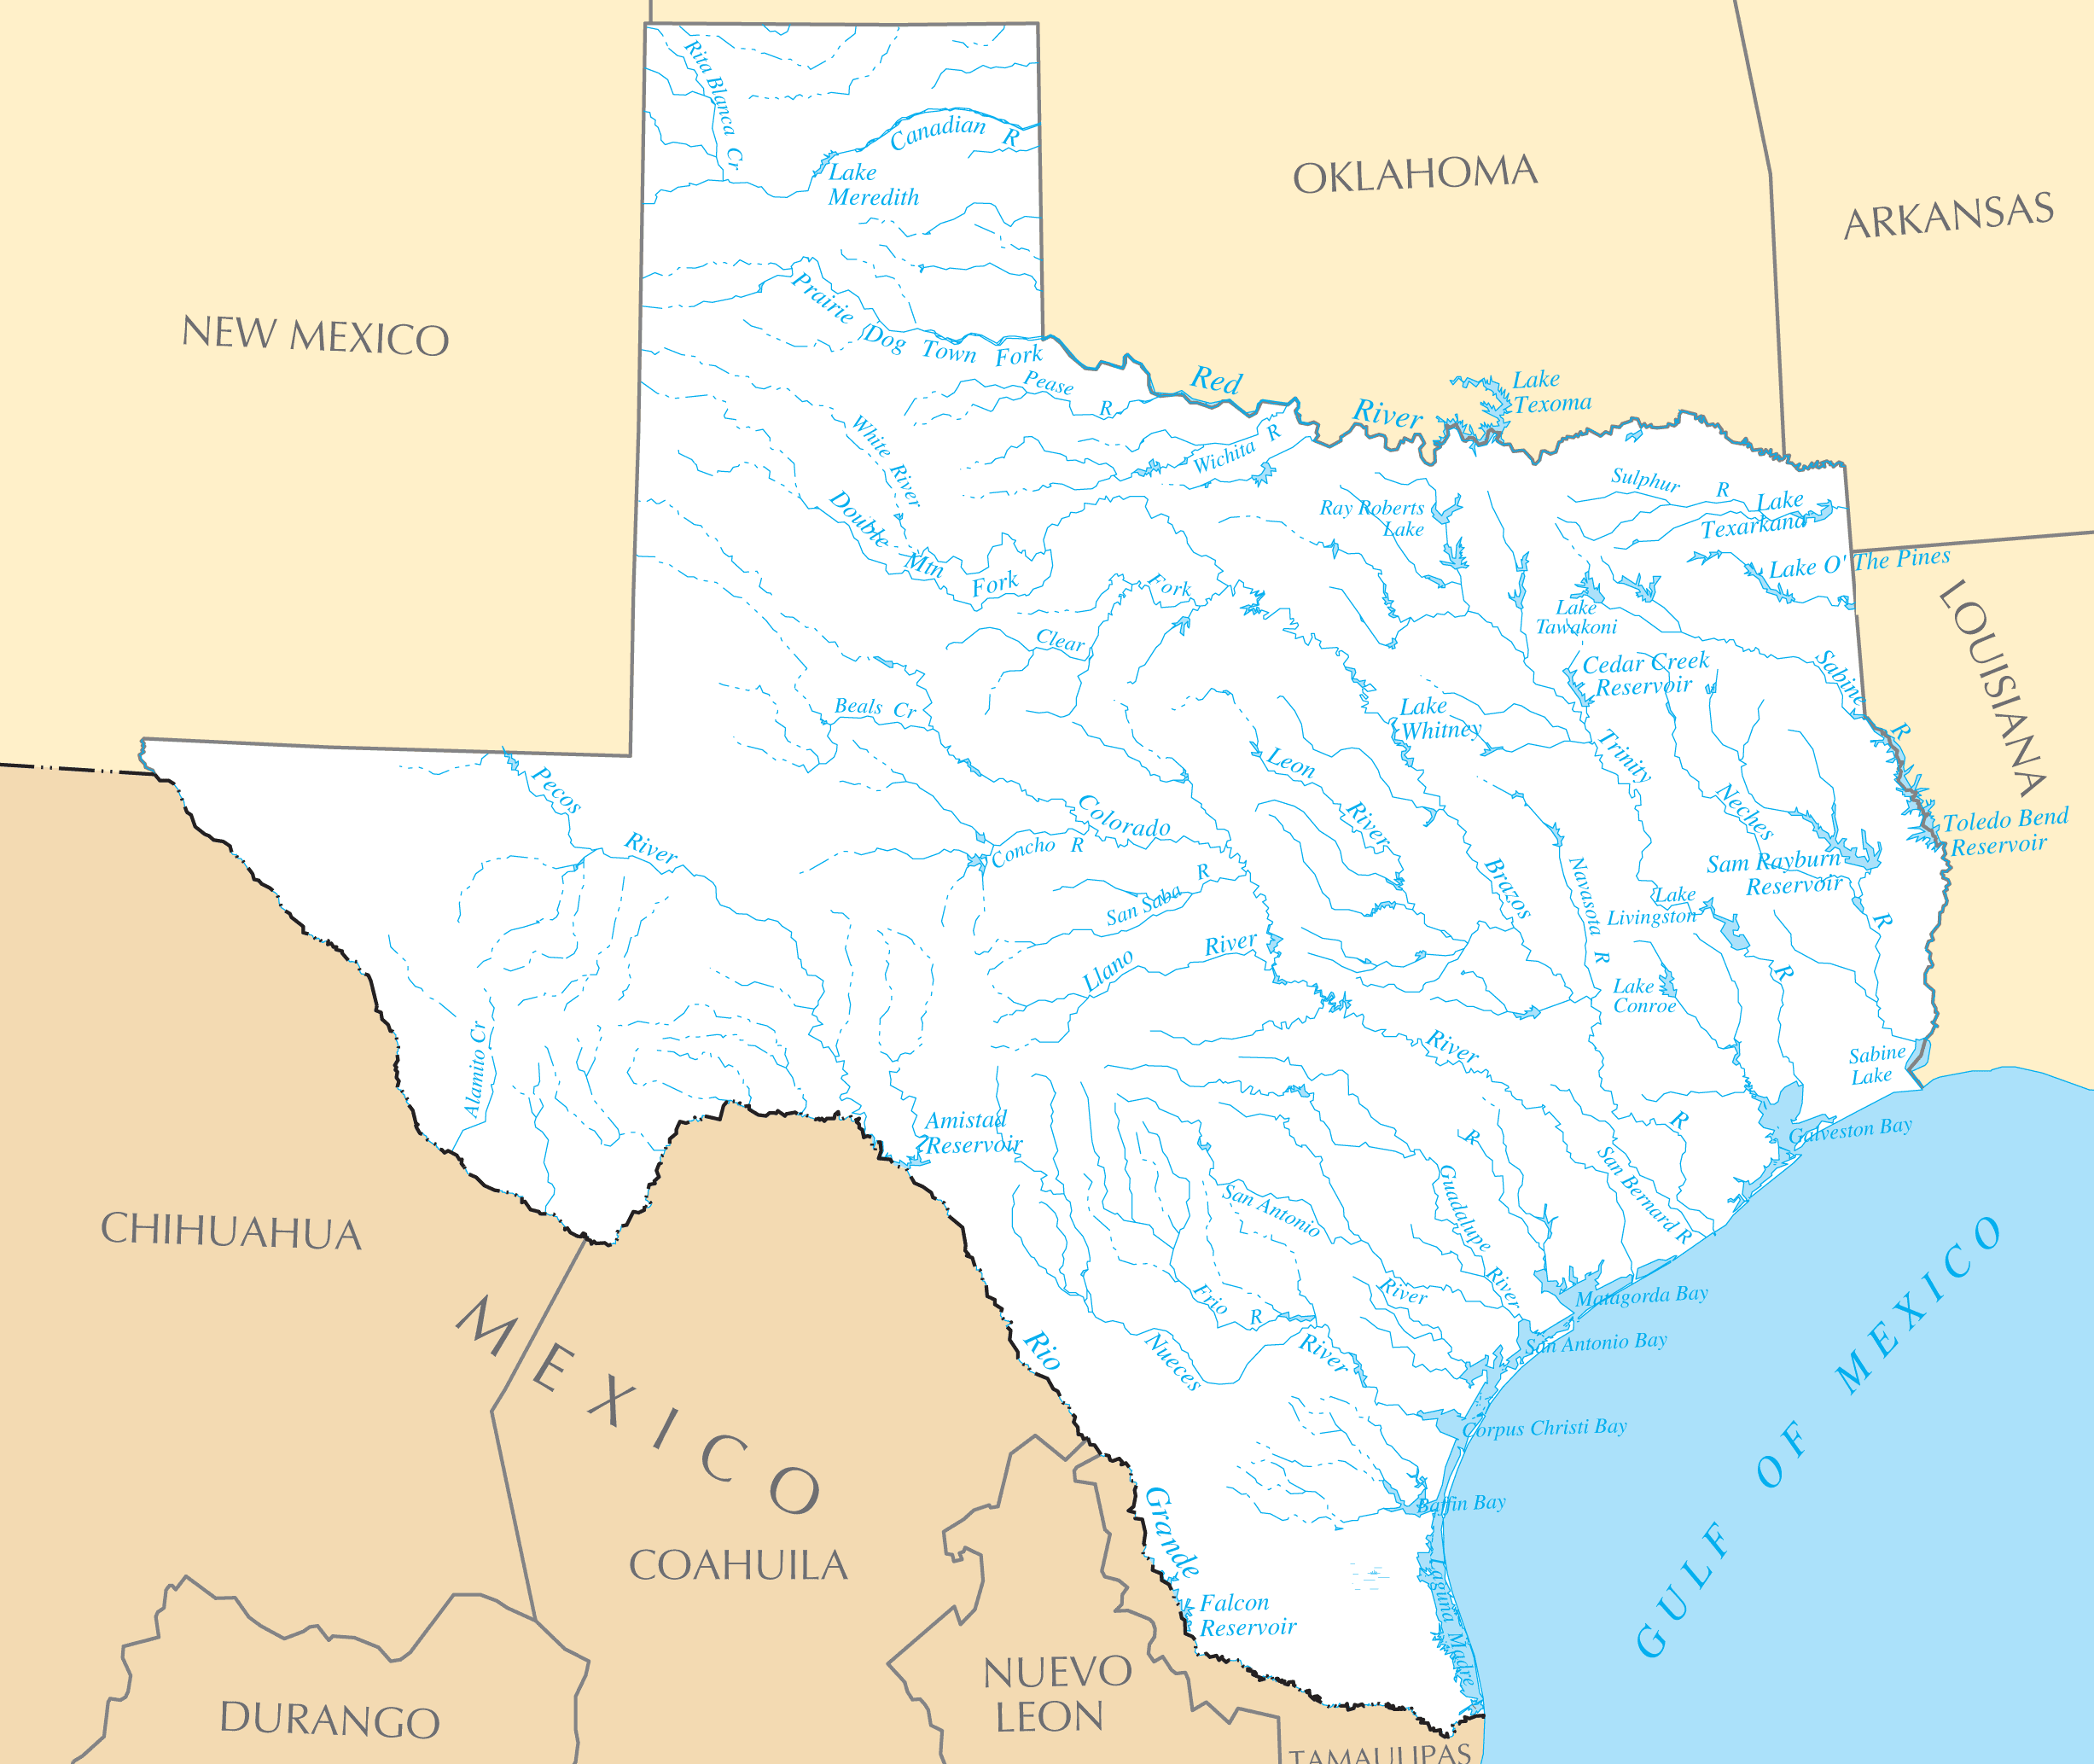 Texas Rivers And Lakes Mapsofnet - Texas rivers and lakes map